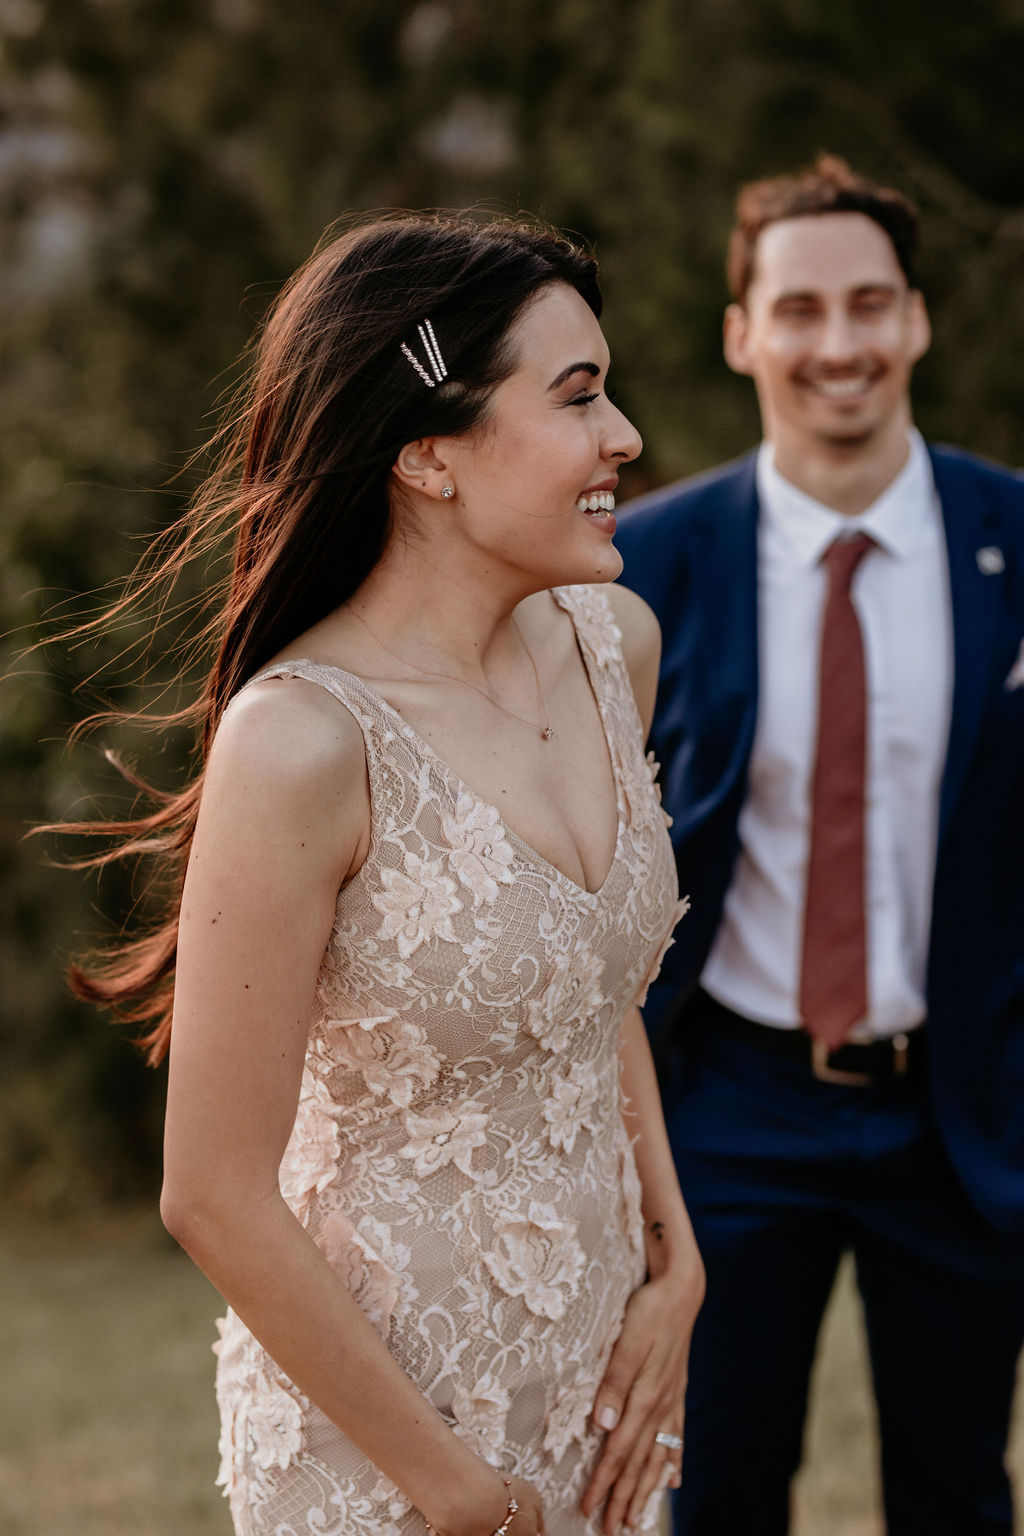 danielle webster photography weddings gold coast bridal gowns bouquet vow renewal to the aisle australia